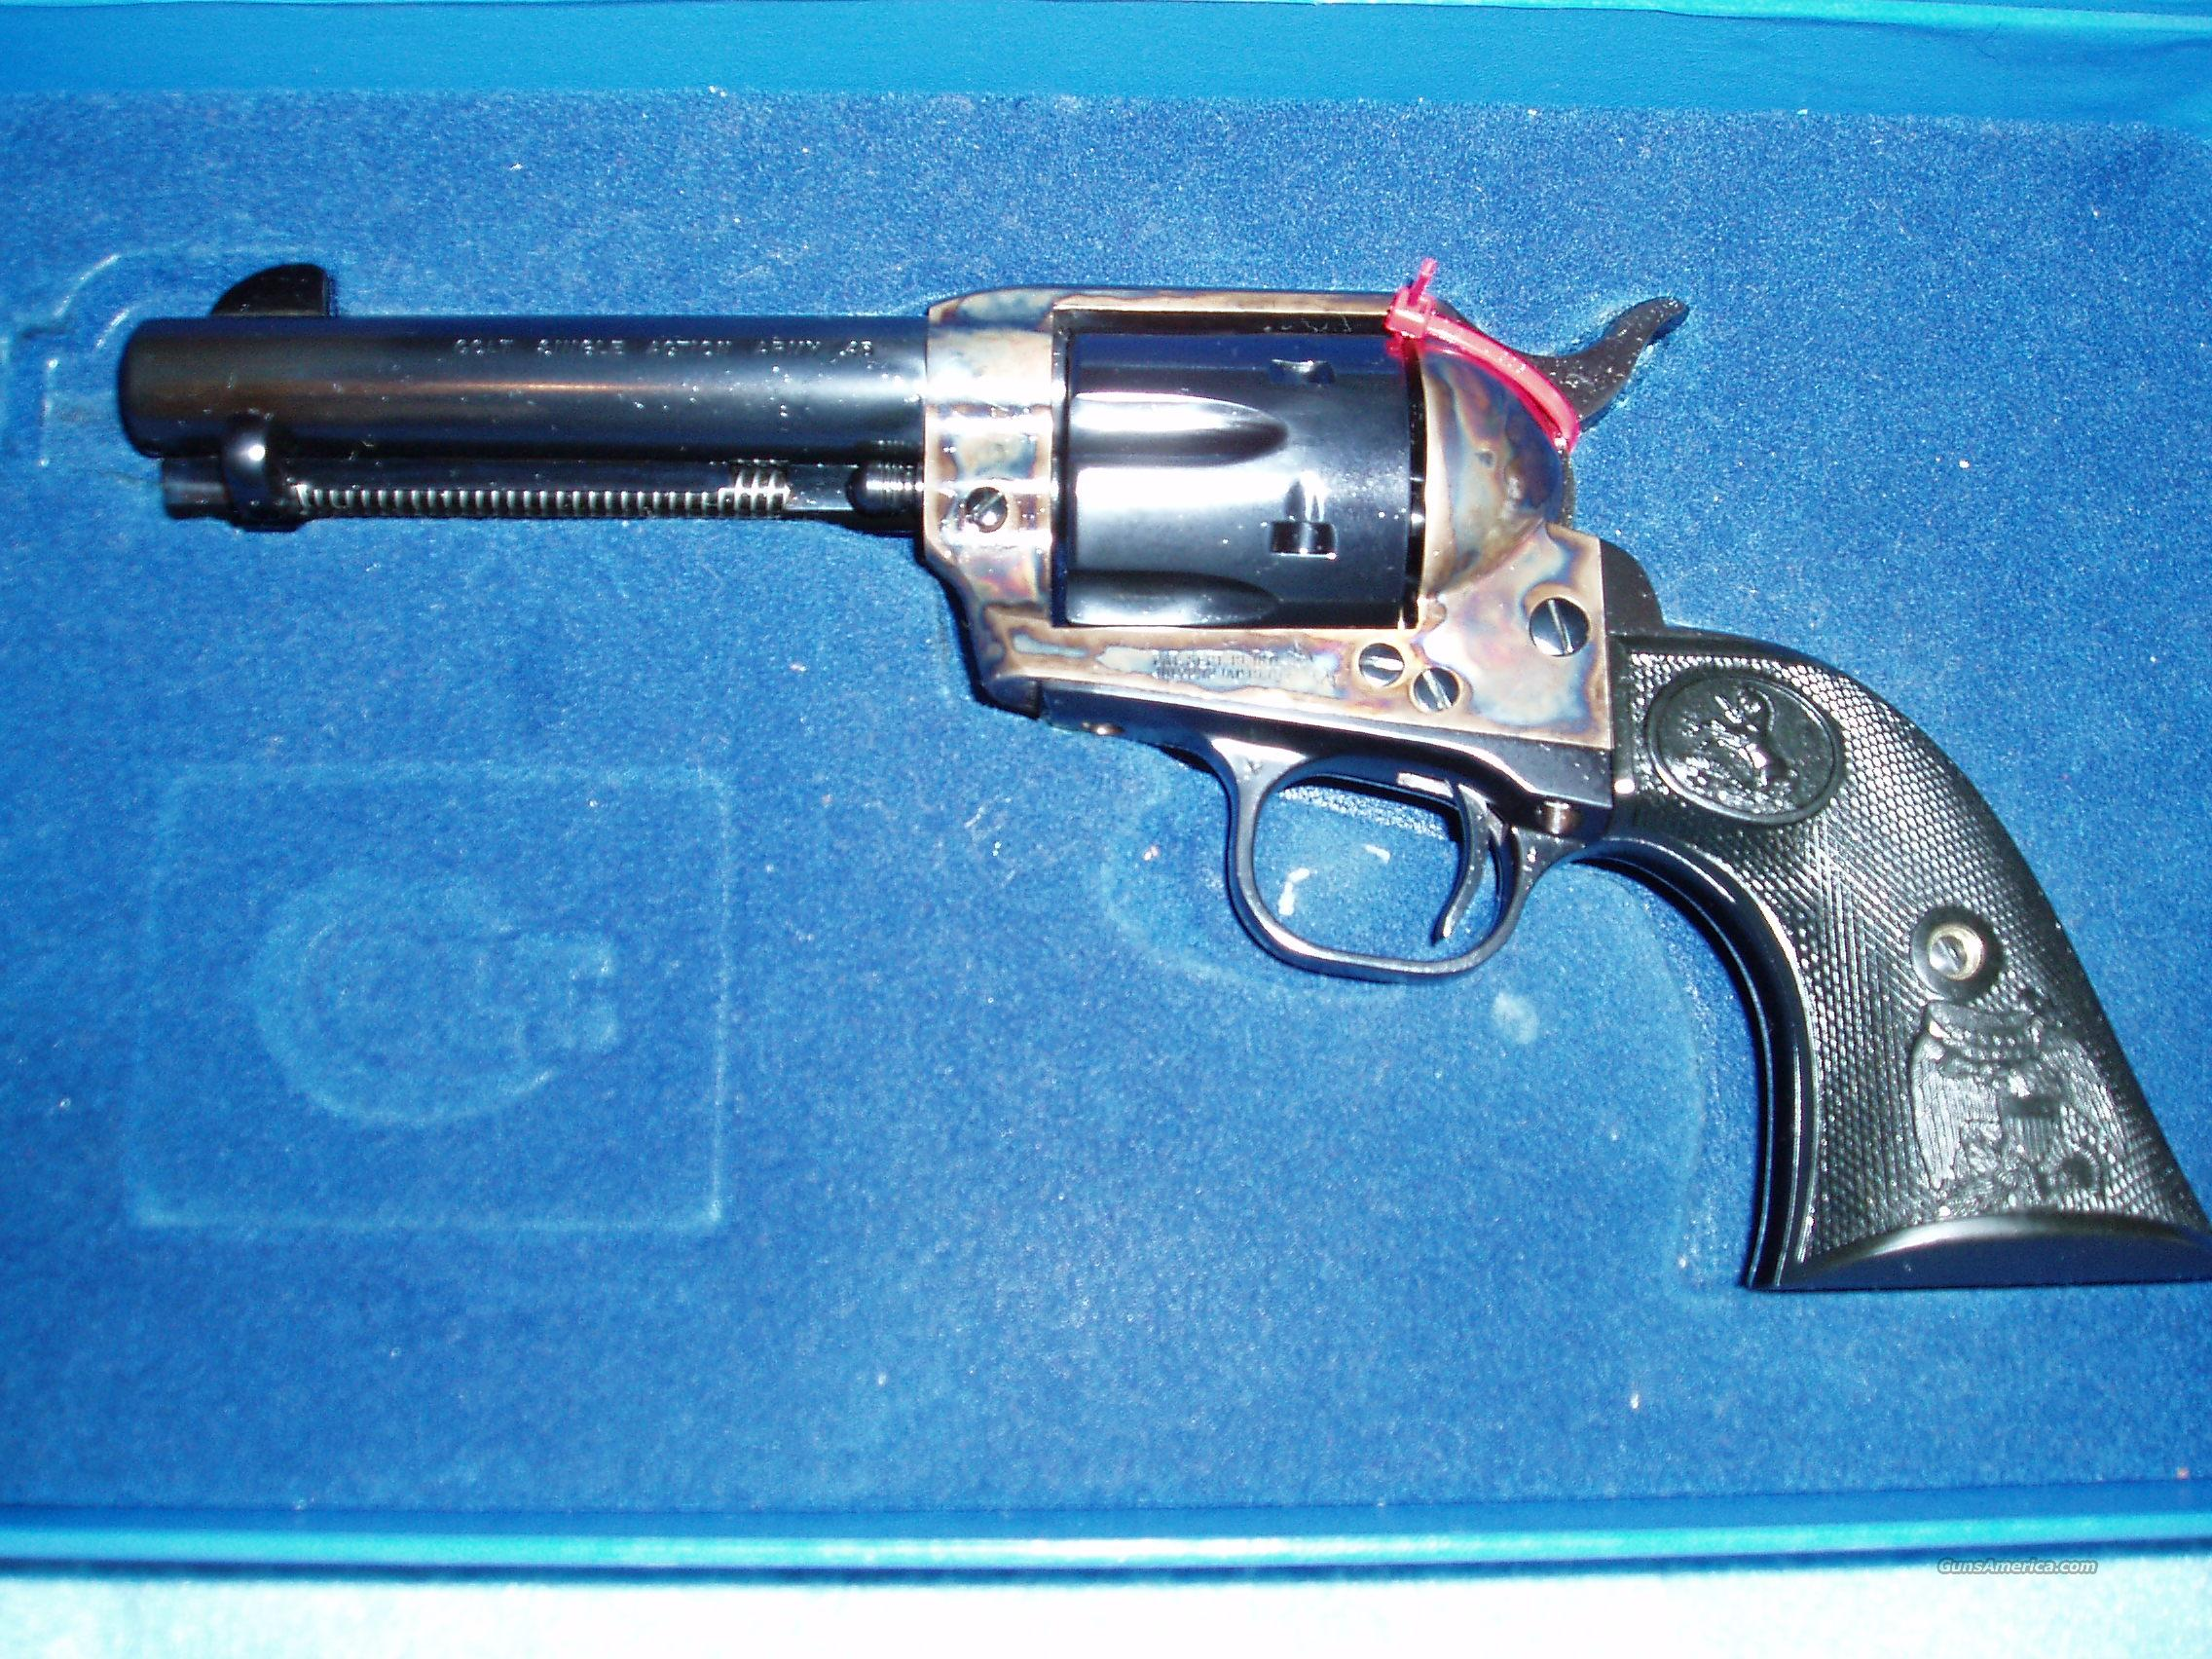 NIB Colt SAA Blue Revolver  Guns > Pistols > Colt Single Action Revolvers - 3rd Gen.